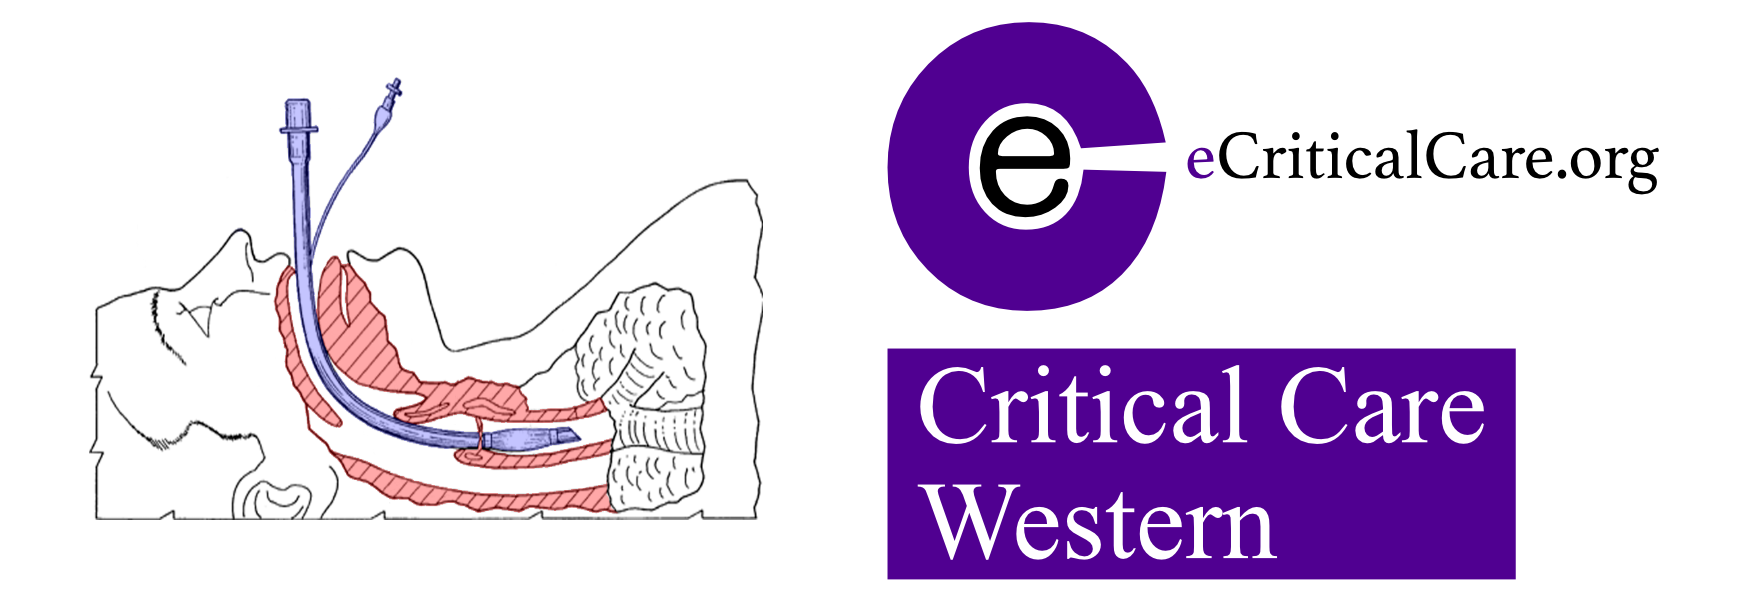 Critical care western extubation. Patient clipart icu clipart